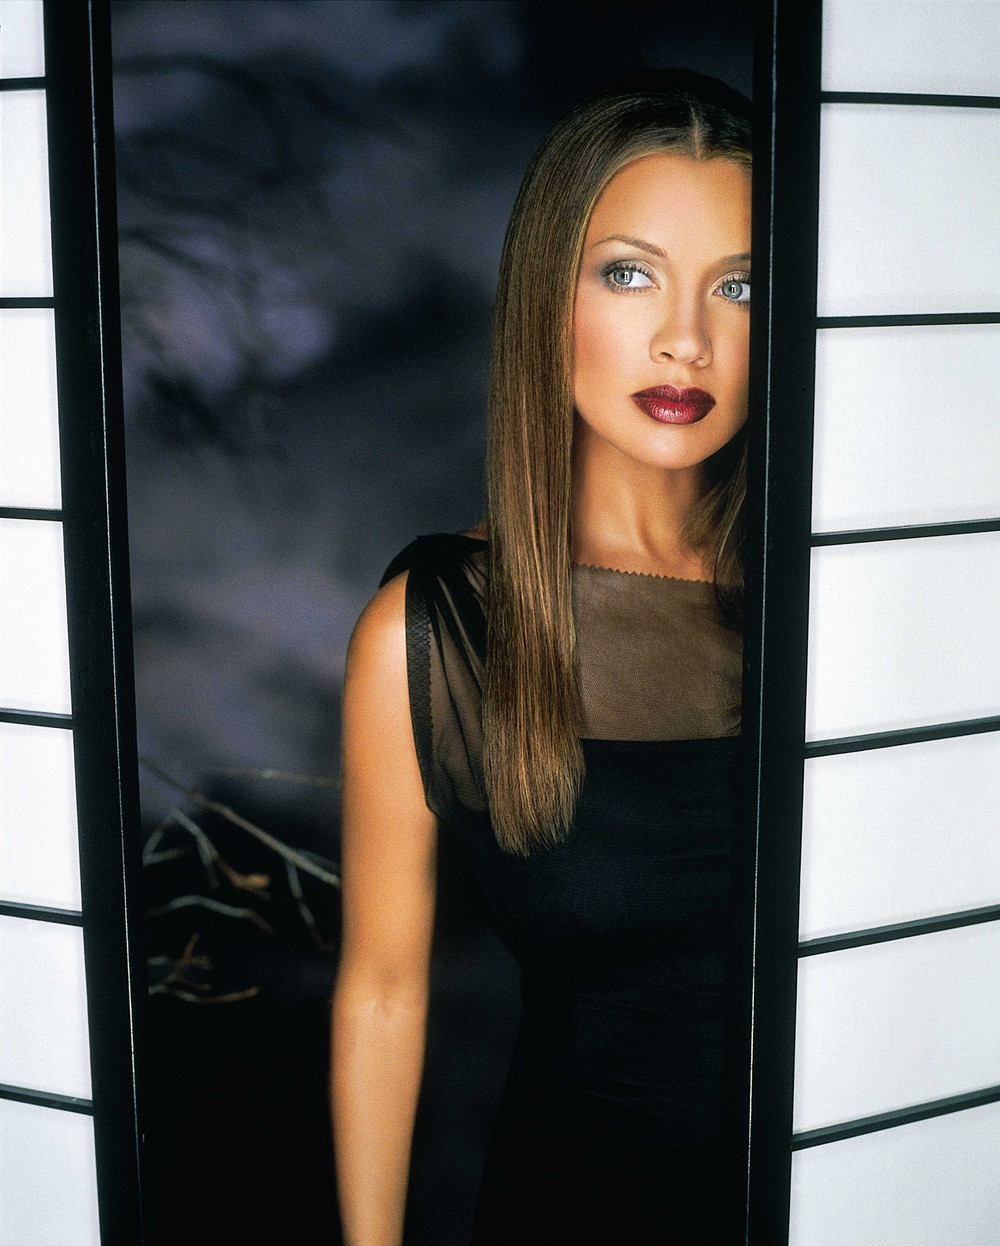 Vanessa Williams: Vanessa Williams On Spotify